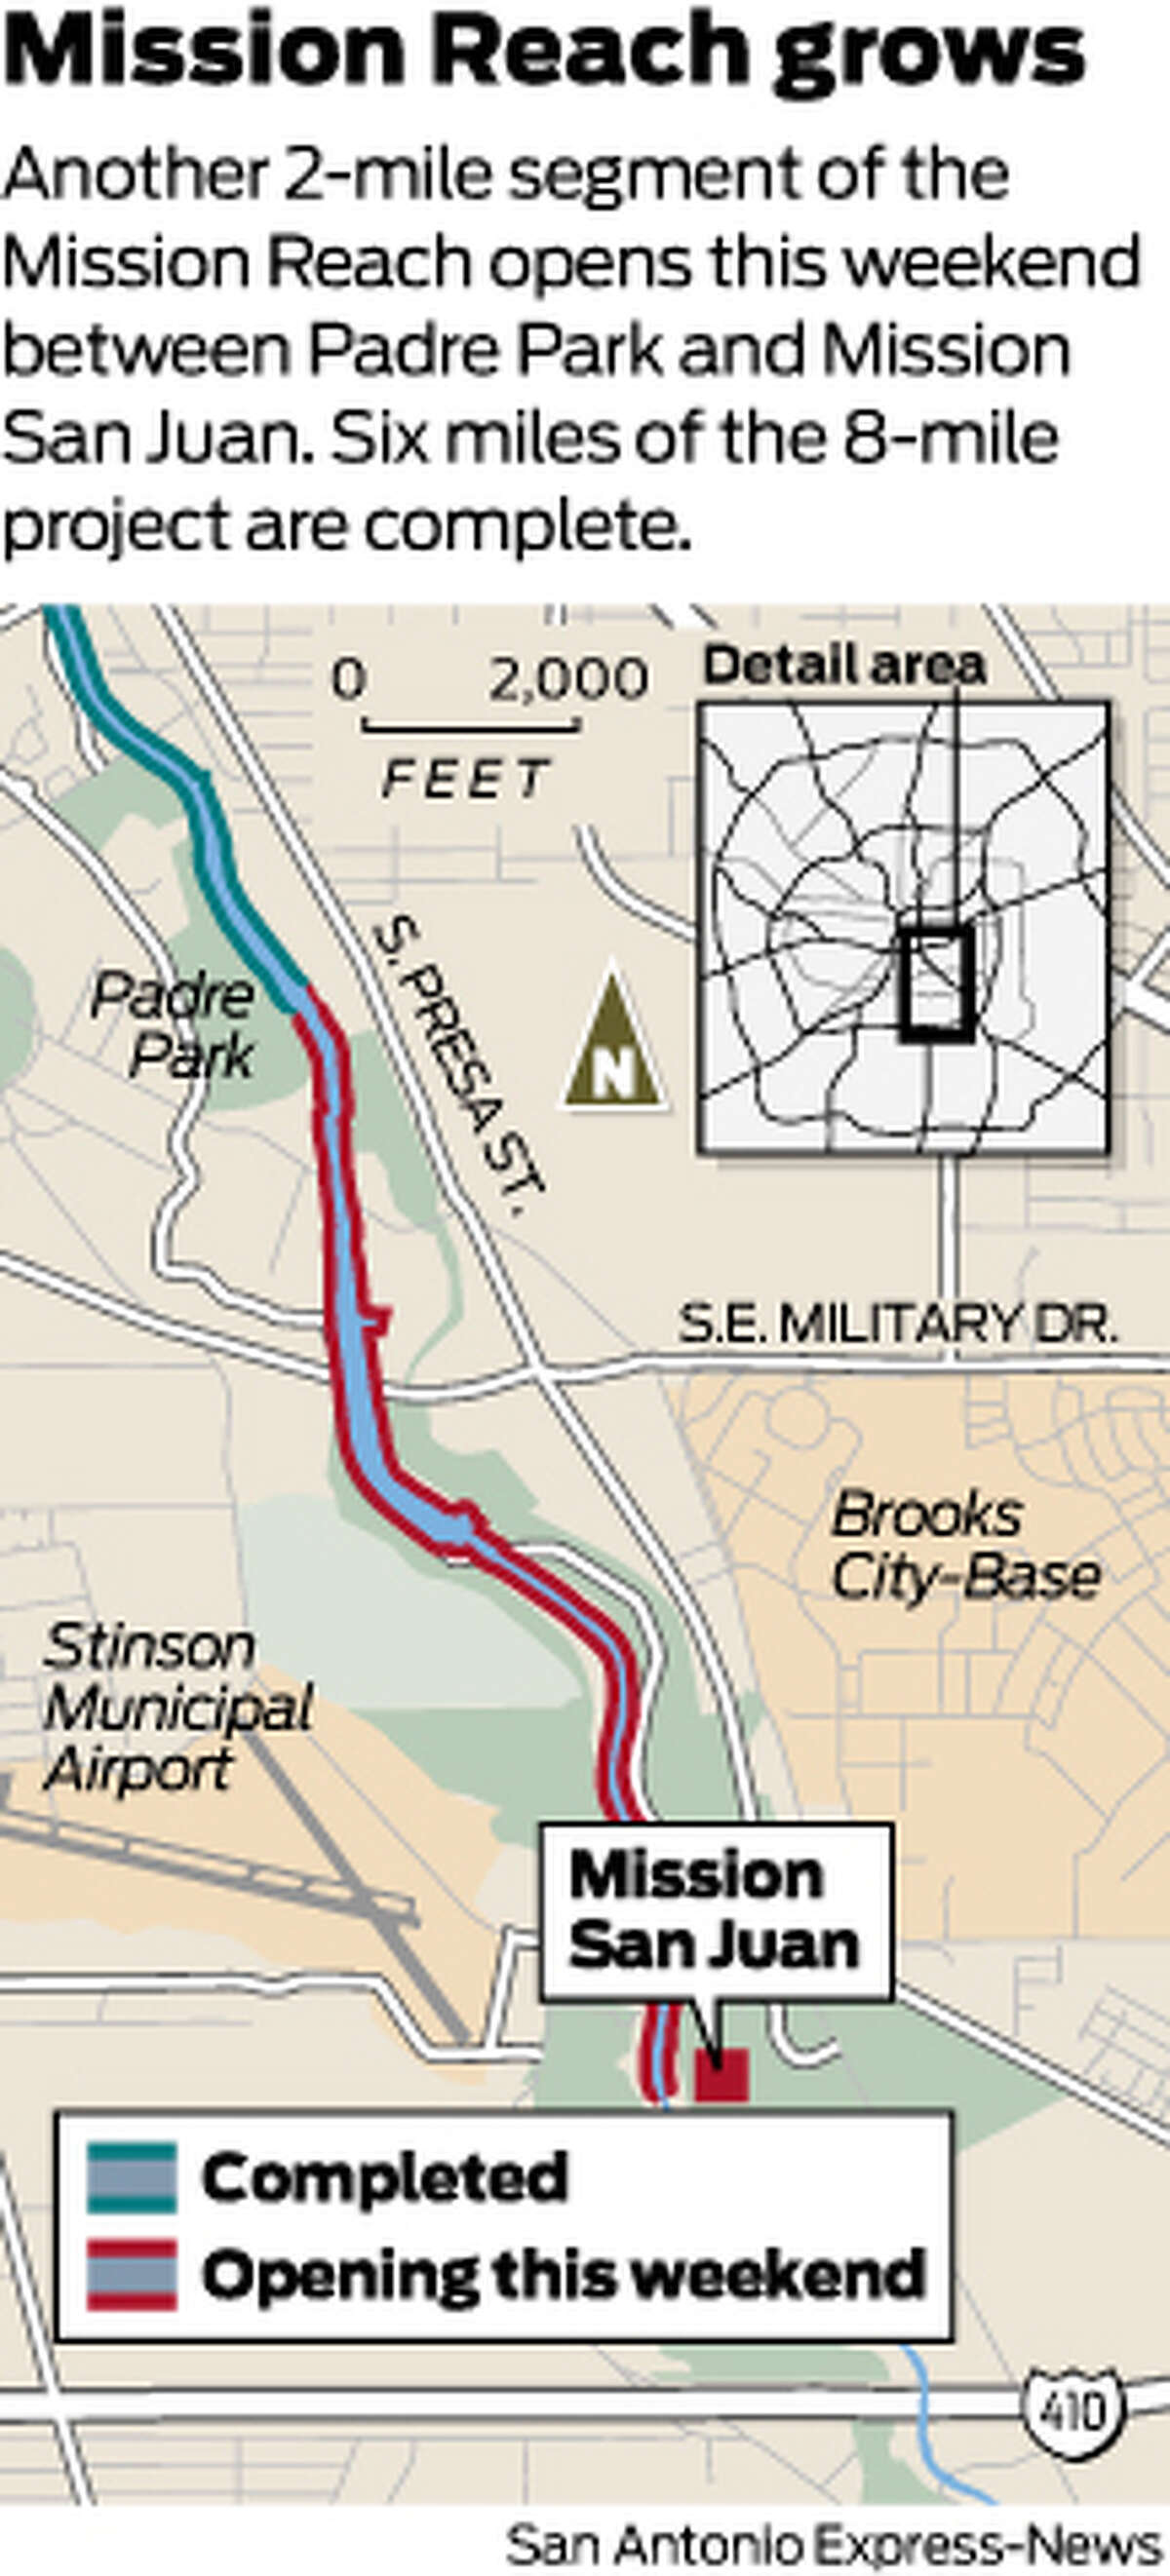 Another 2-mile segment of the Mission Reach opens this weekend between Padre Park and Mission San Juan. Six miles of the 8-mile project are complete.